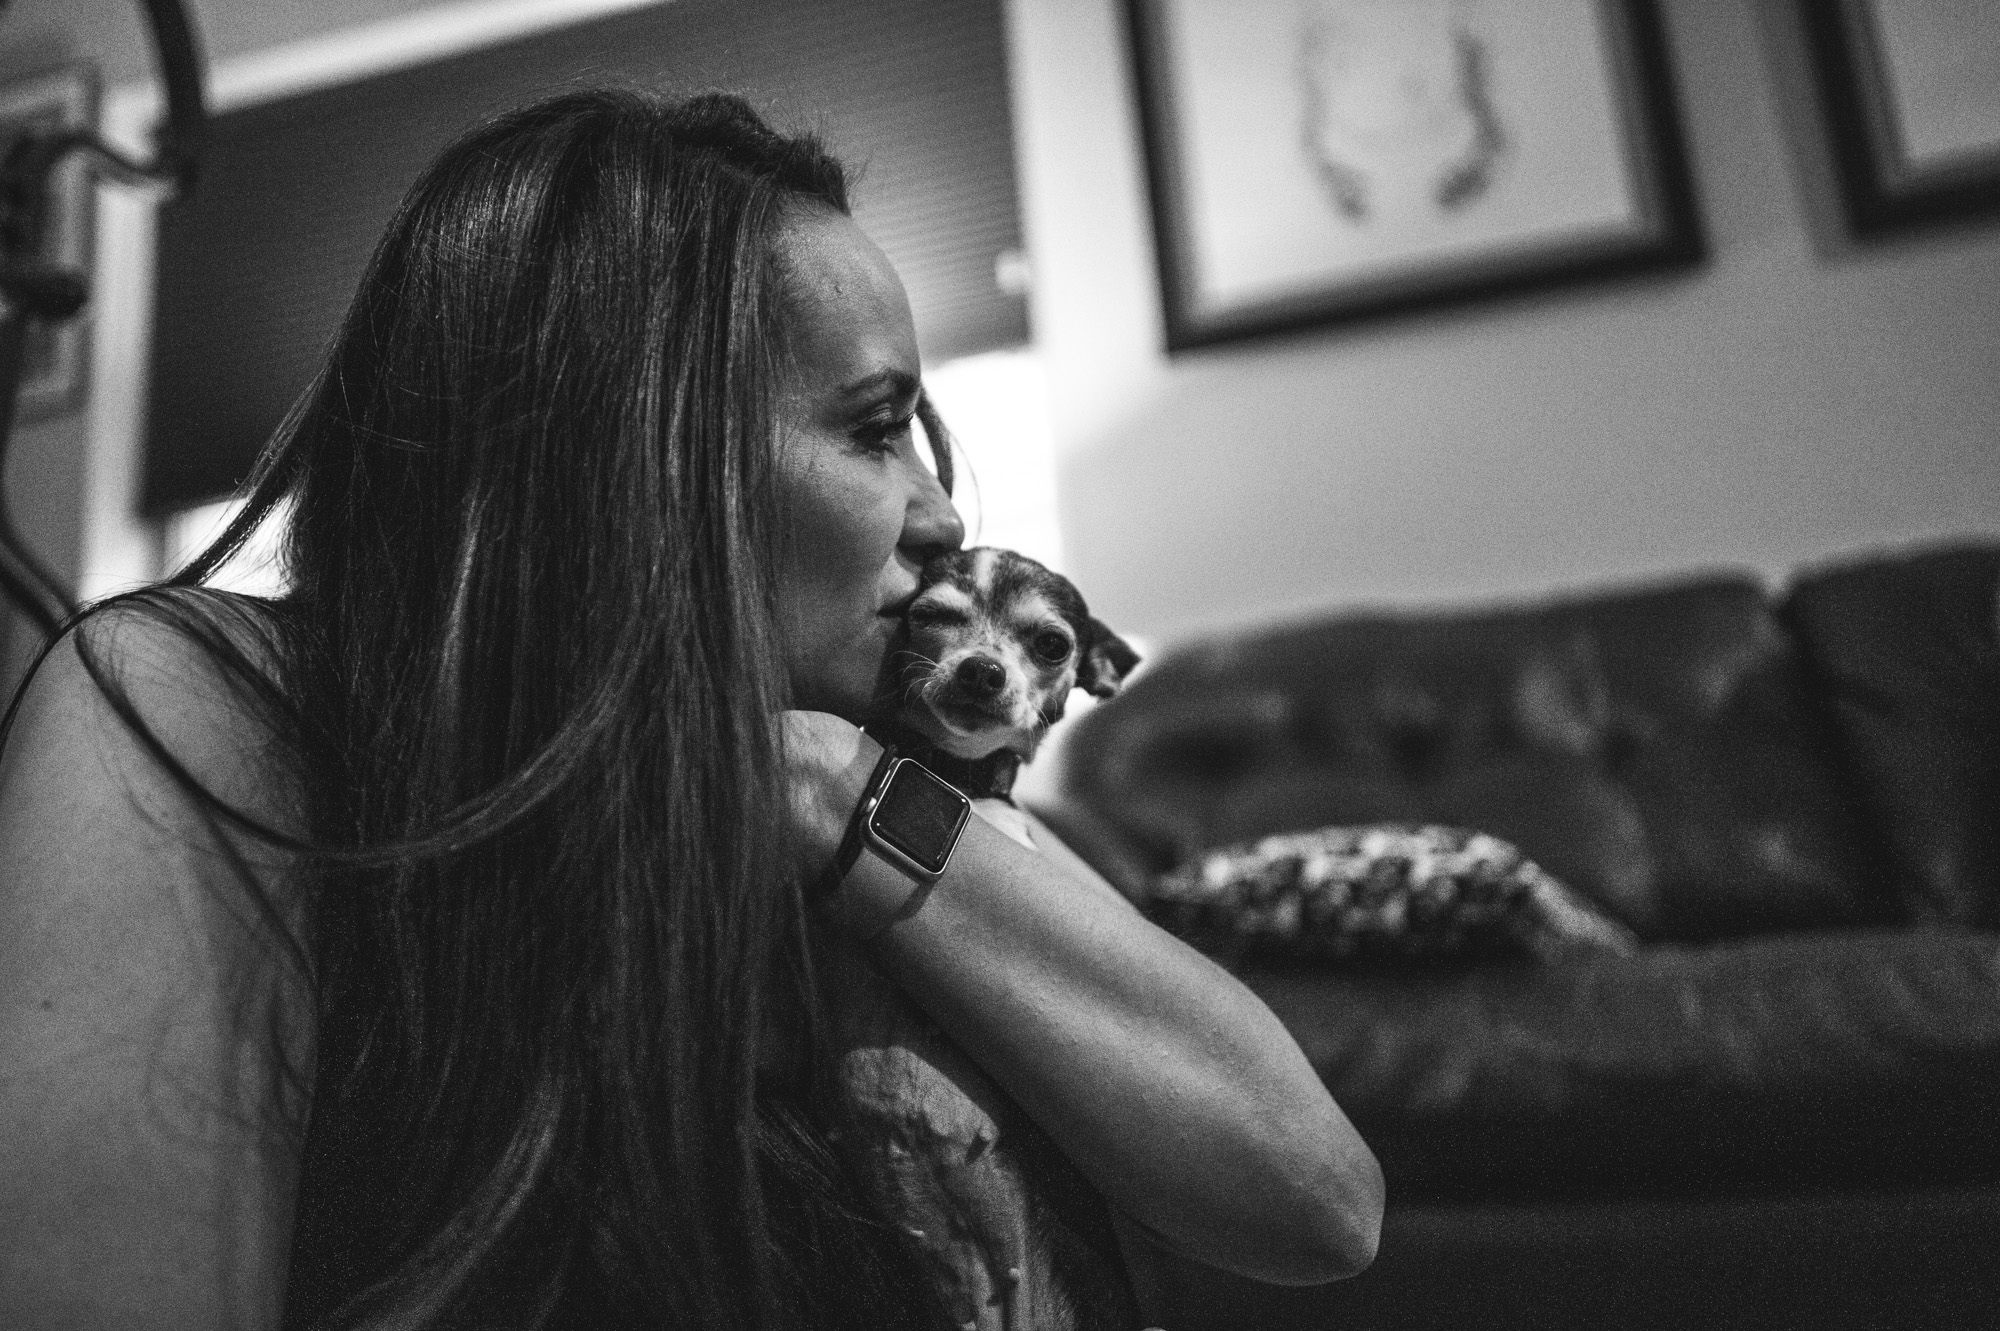 Woman kissing her chihuahua's face as the little dog makes a funny face, black and white, Denver, Colorado